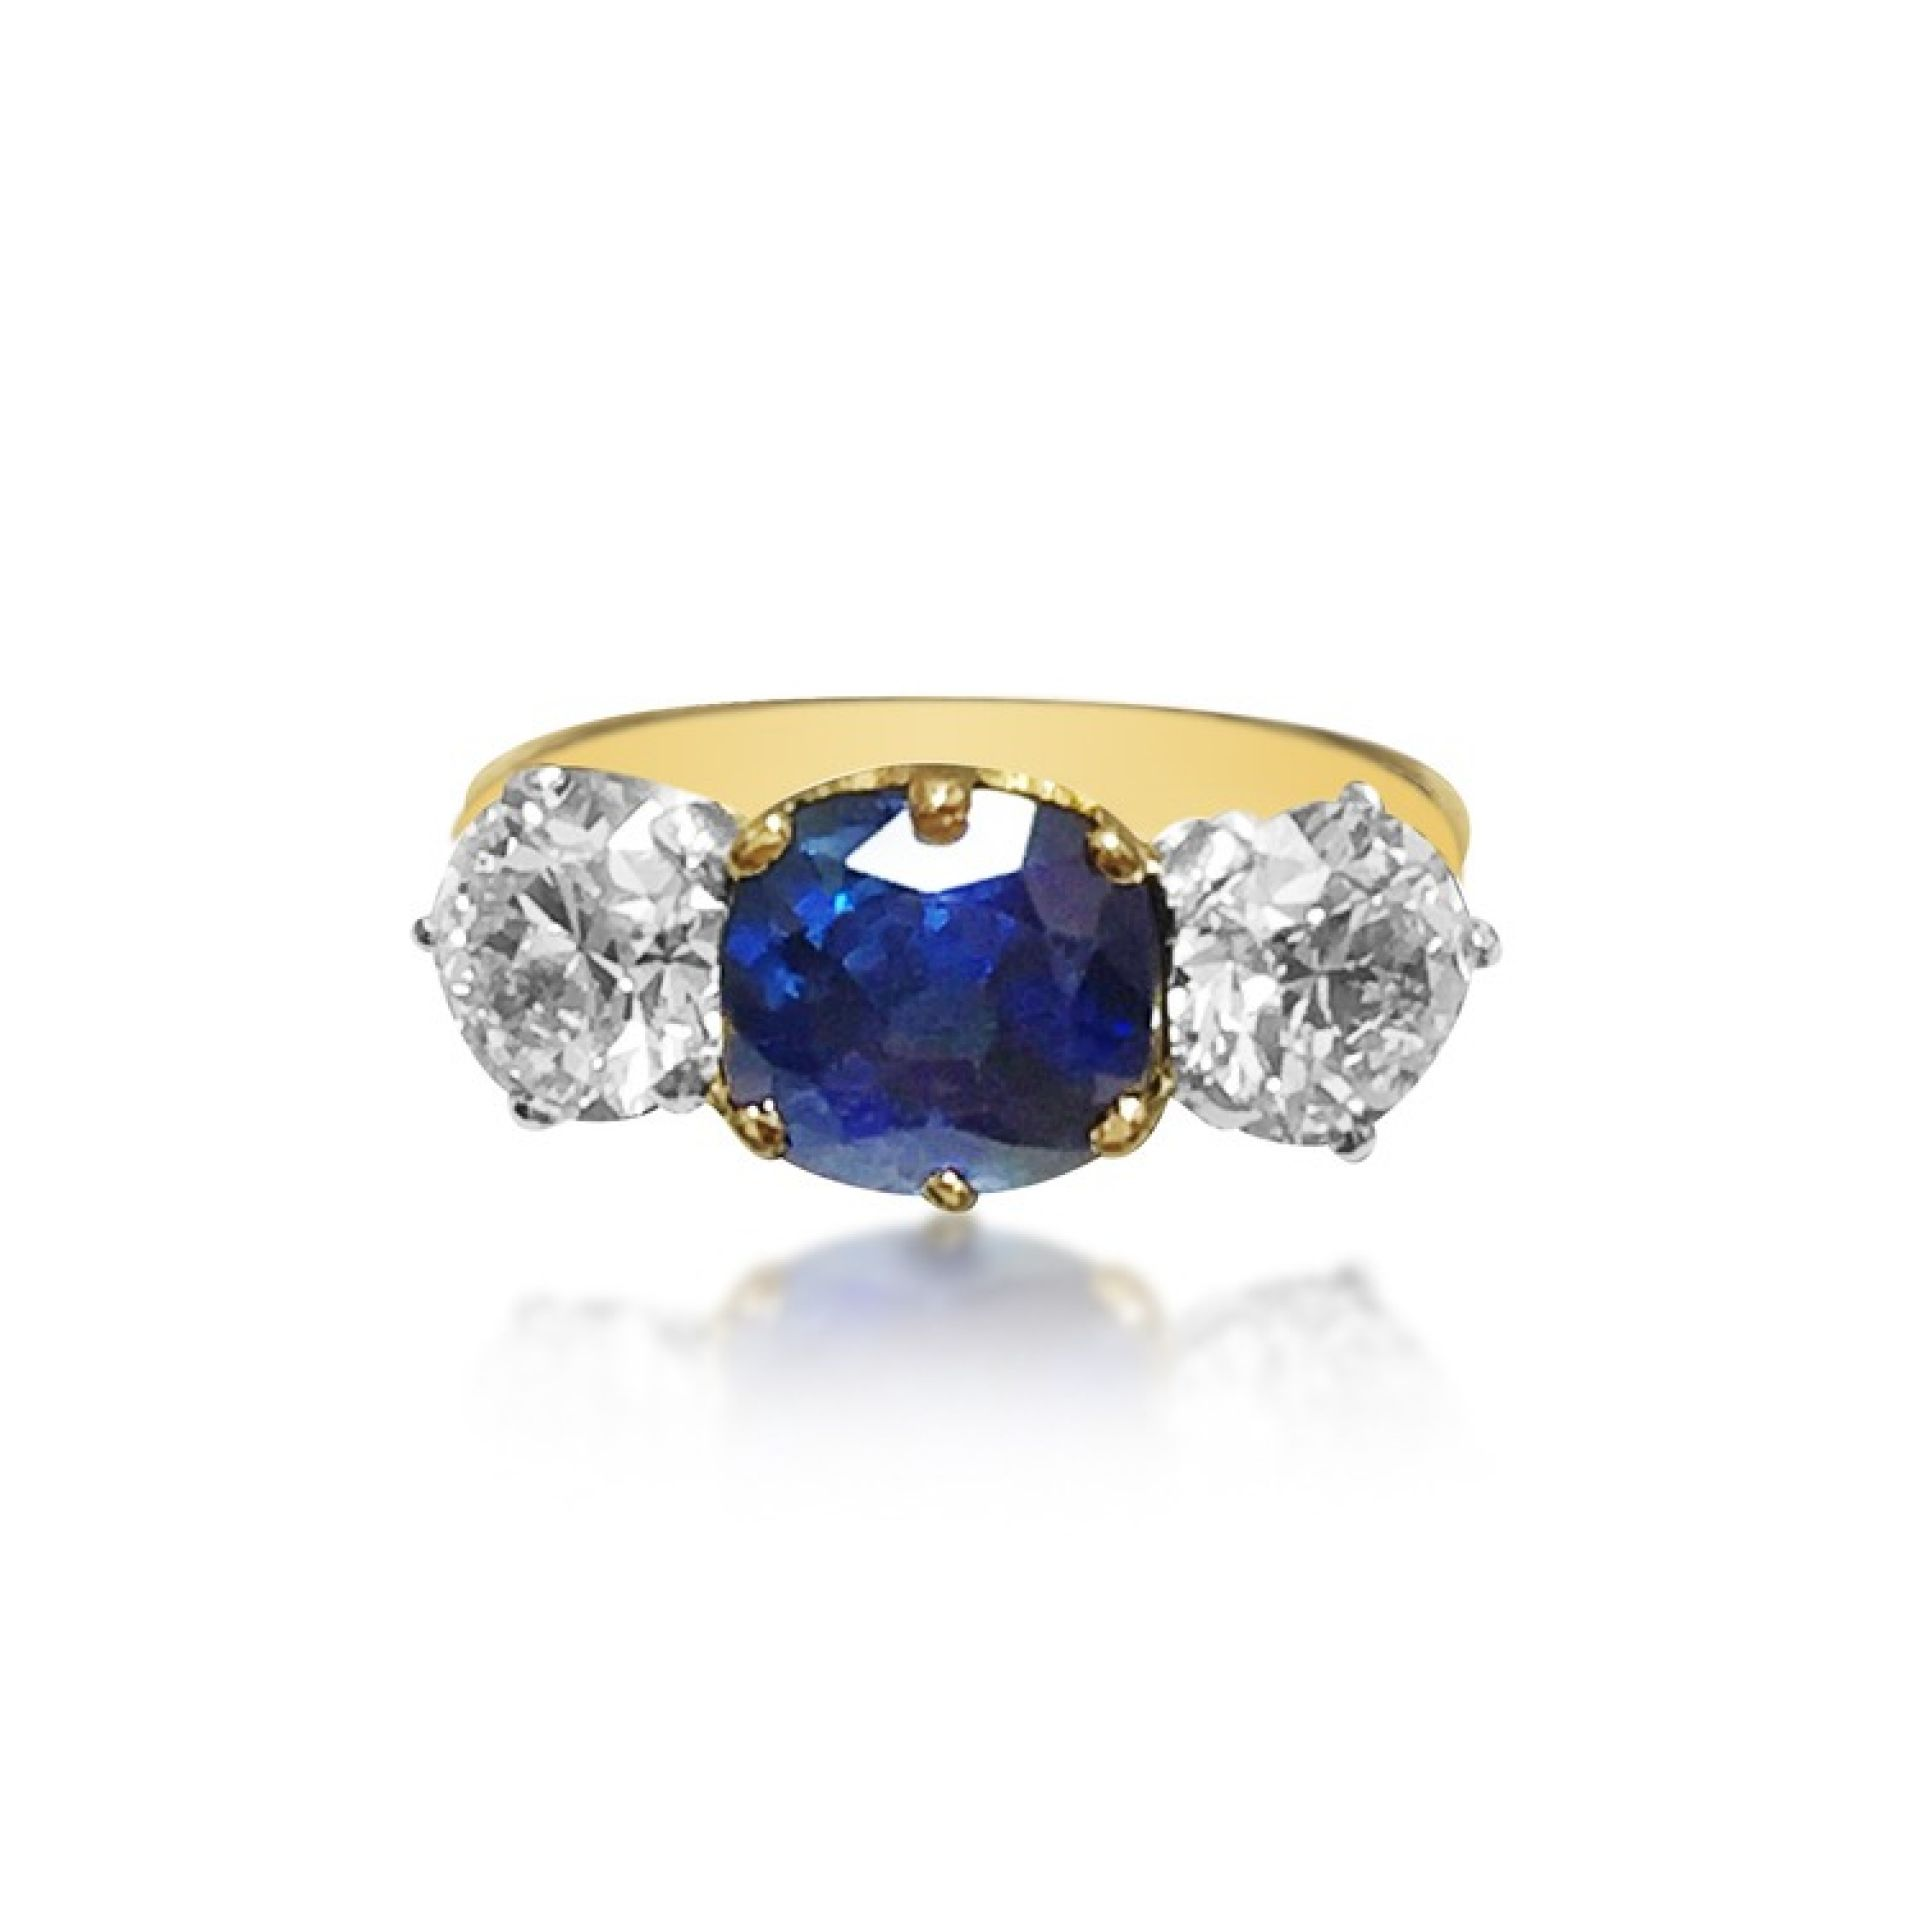 A DIAMOND AND SAPPHIRE RING, BY TIFFANY & CO